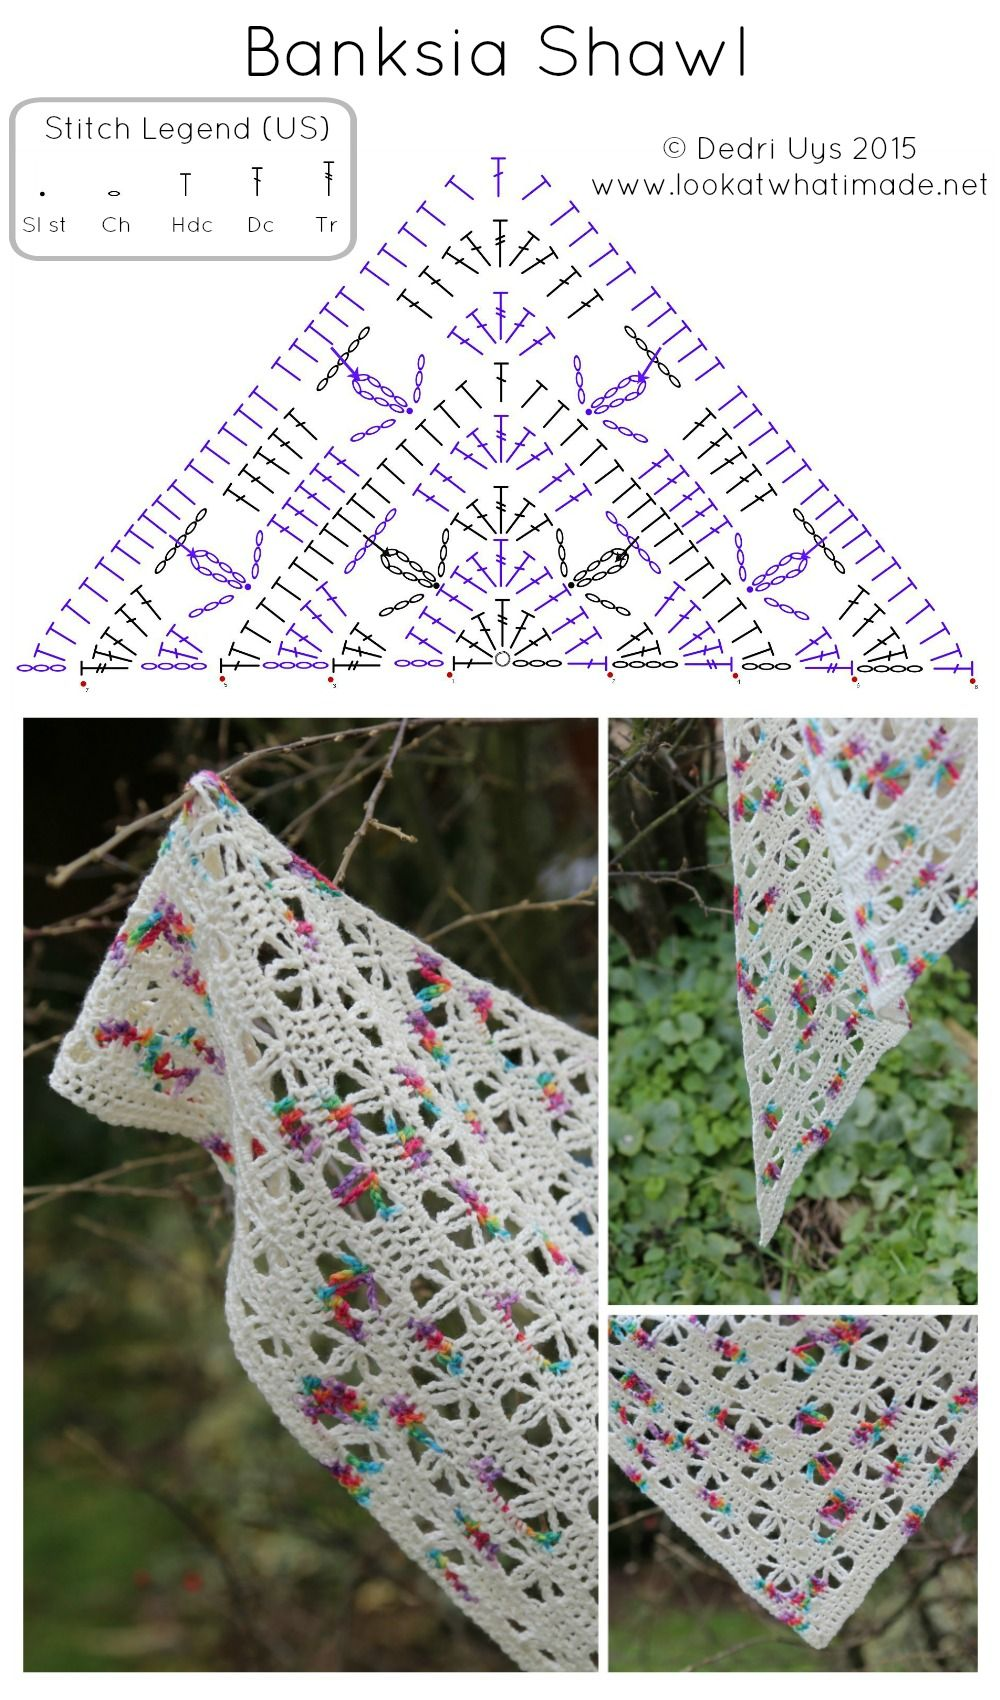 Banksia Shawl Crochet Pattern – Look At What I Made | Crochet ...